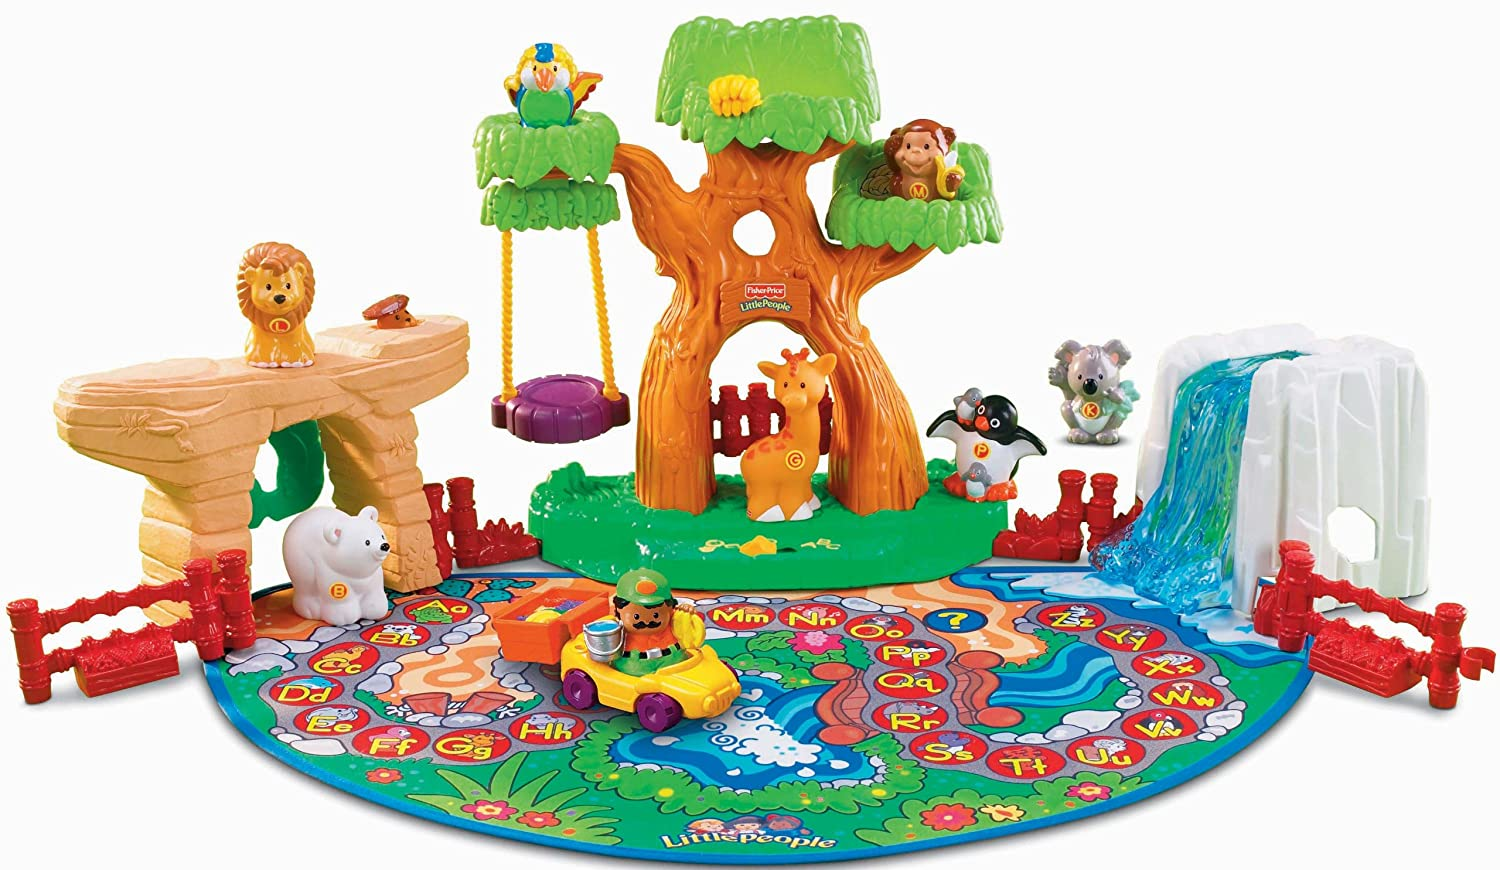 Amazon.com: Fisher-Price Little People A To Z Learning Zoo Playset ...